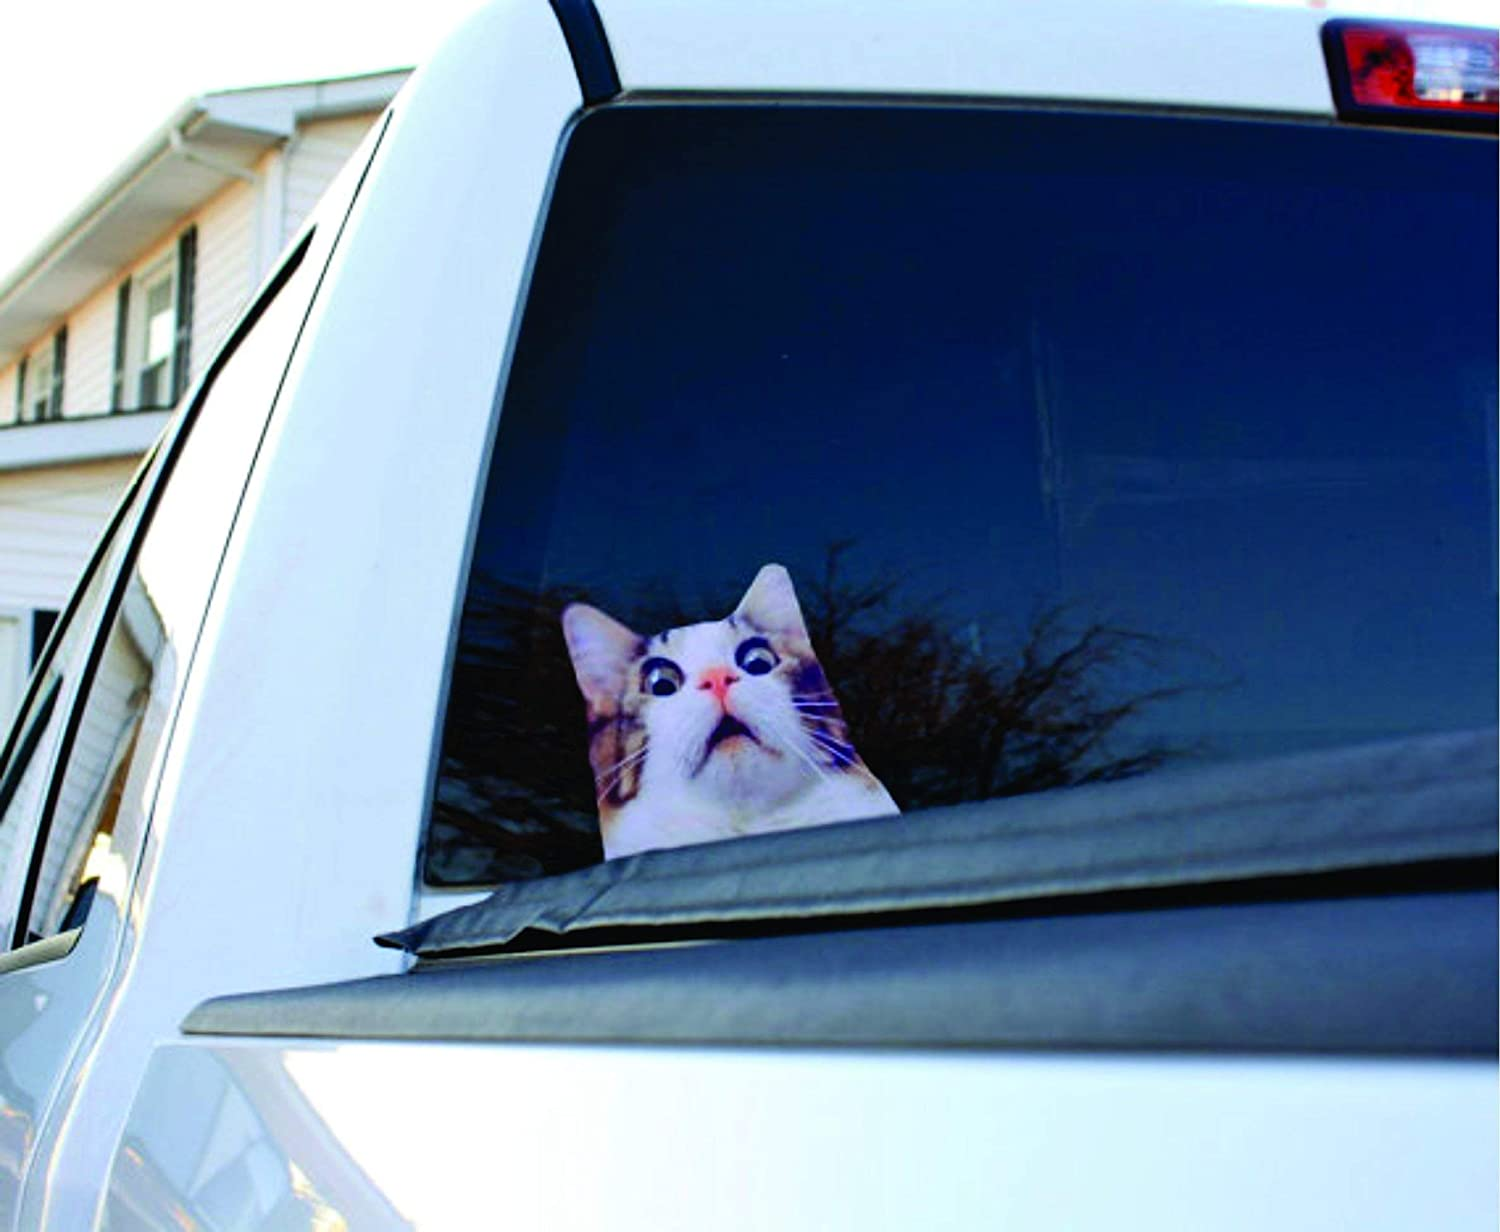 Cat Sticker, Cat Decal, Funny Cat Decal, Scaredy Cat sticker, Cat Decal